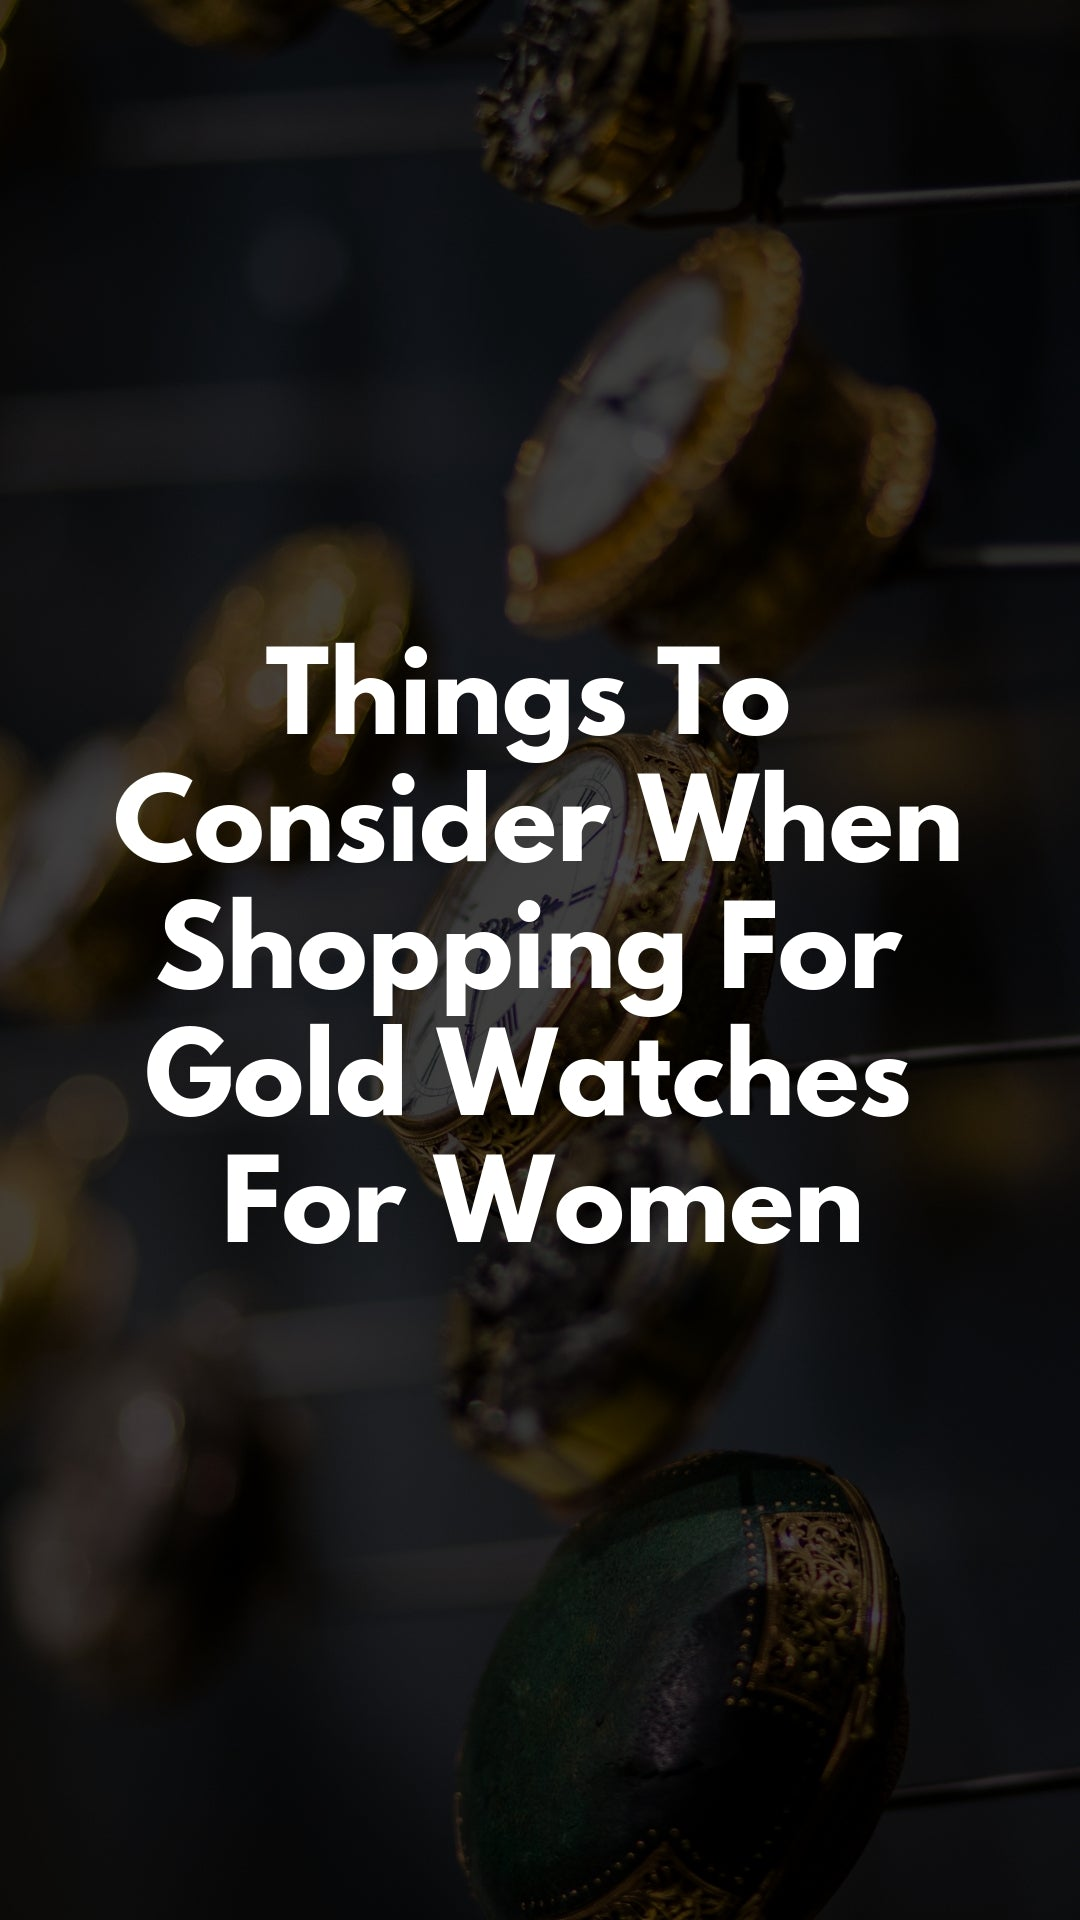 Things To Consider When Shopping For Gold Watches For Women